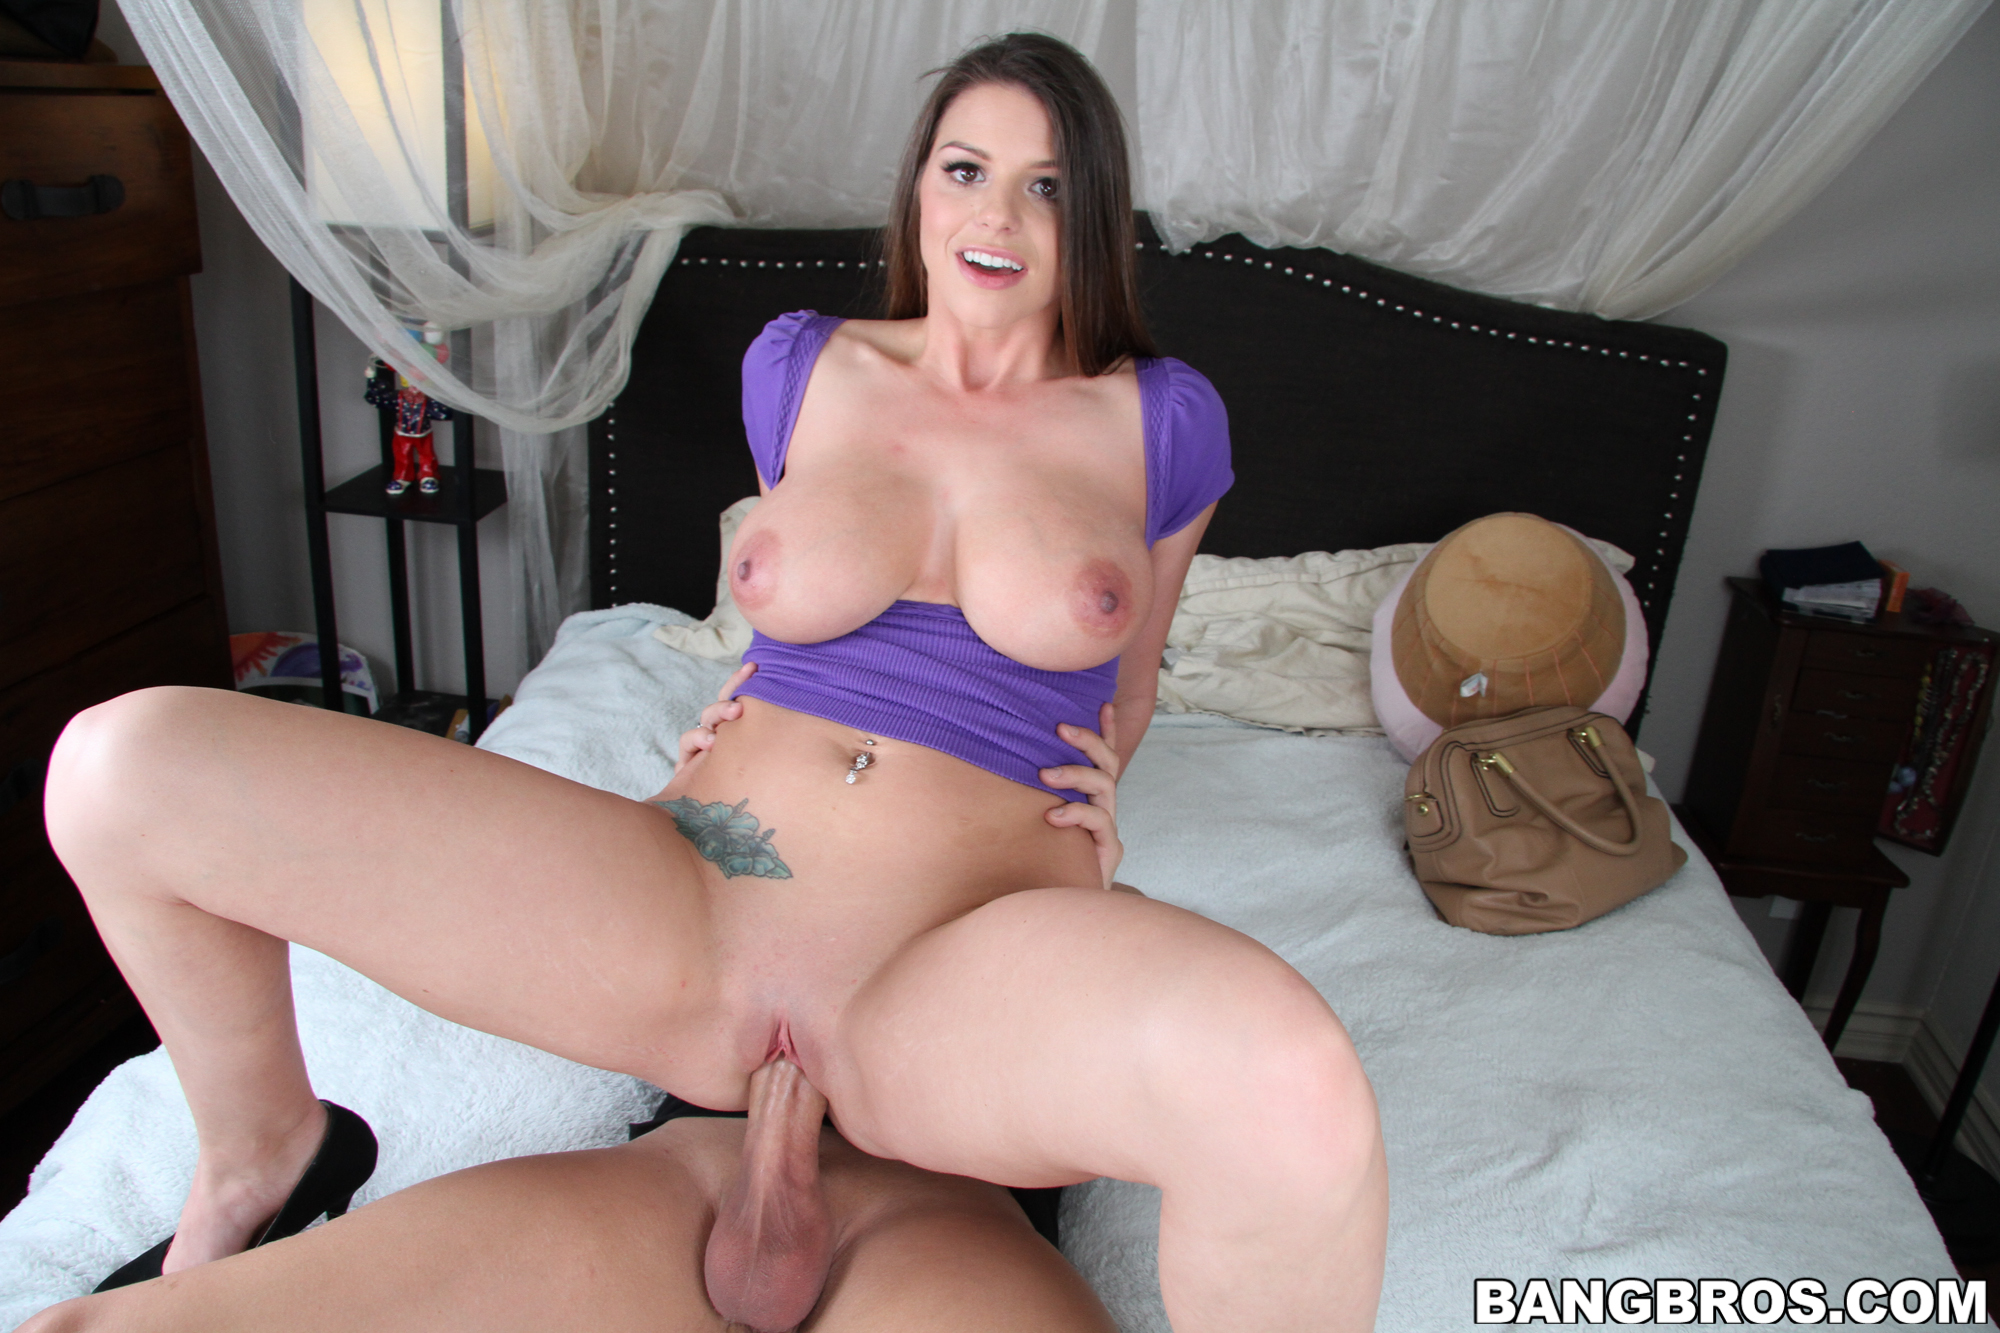 That's nice brooklyn chase cup size